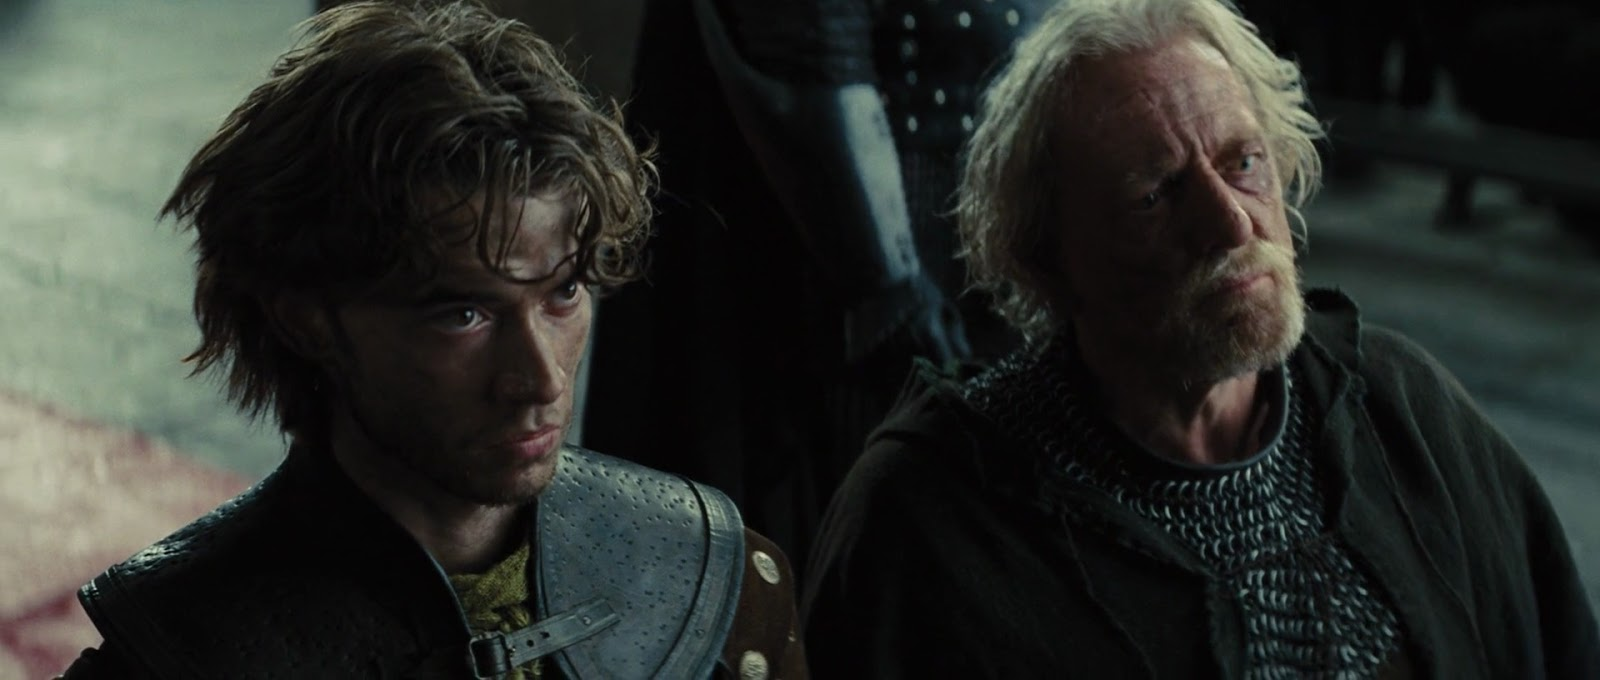 Snow White and the Huntsman (2012) 3